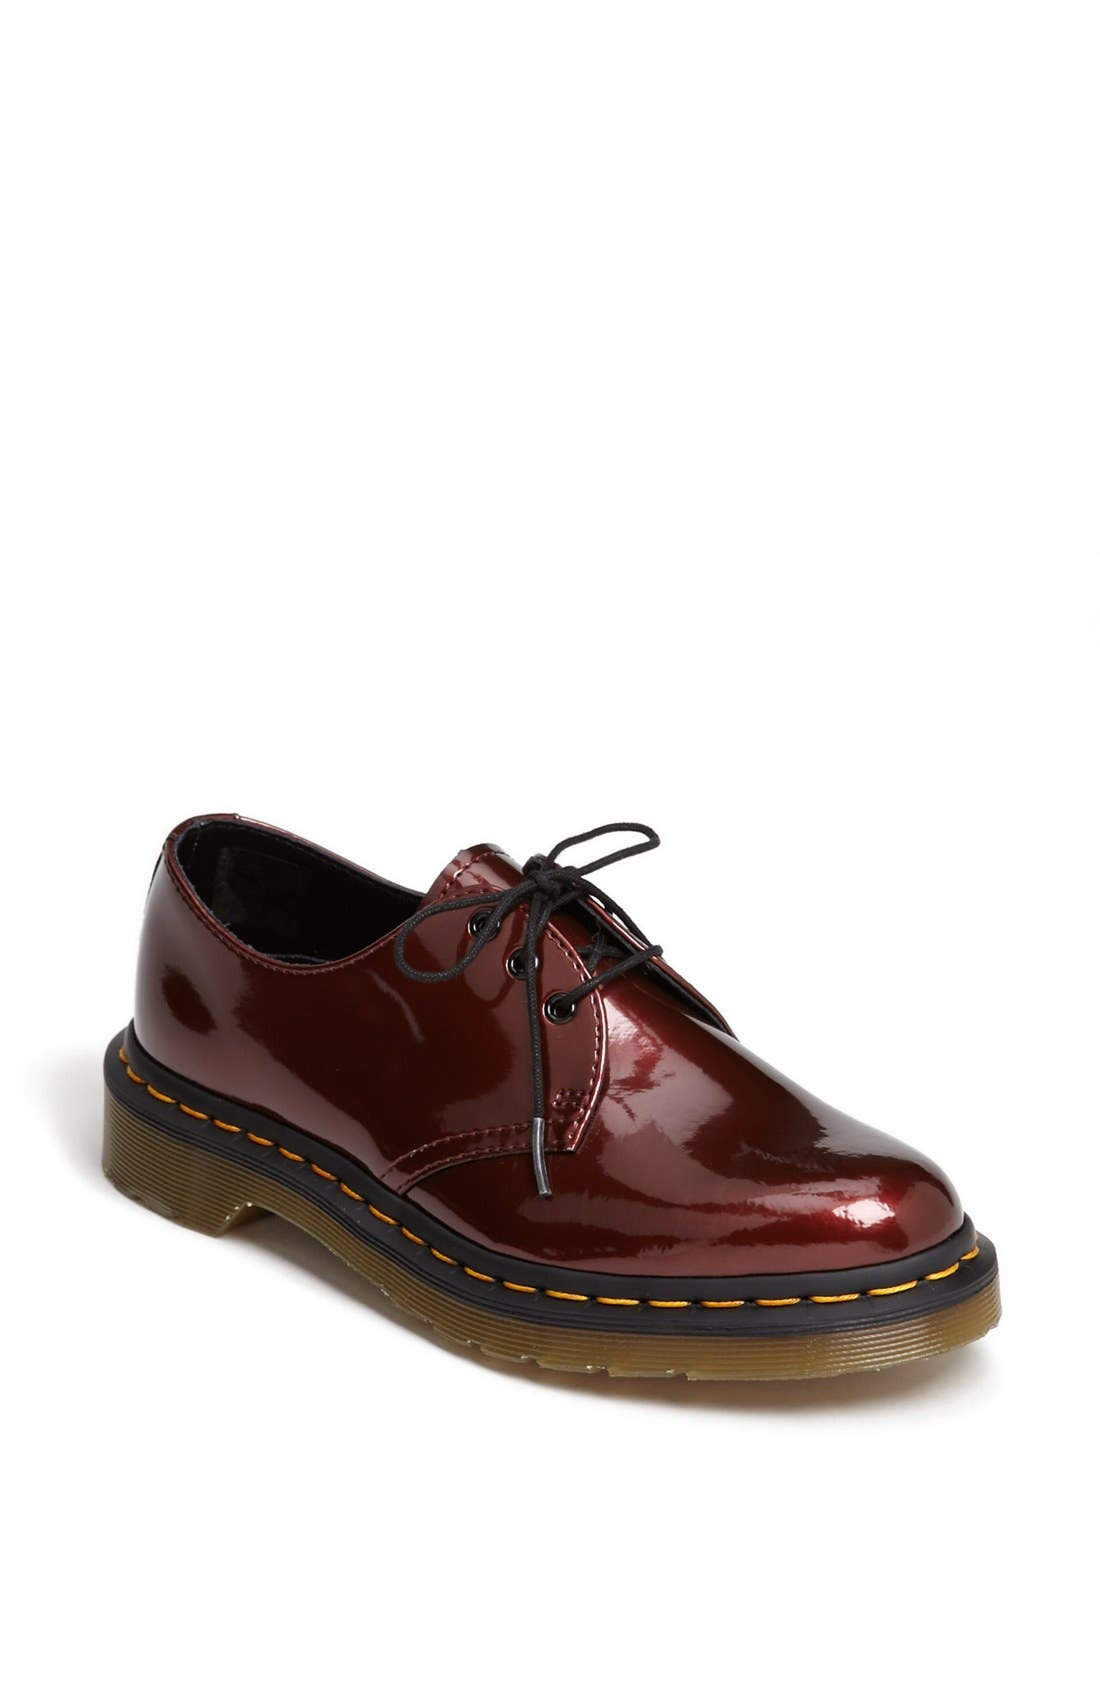 Main Image - Dr. Martens '1461 W' Oxford